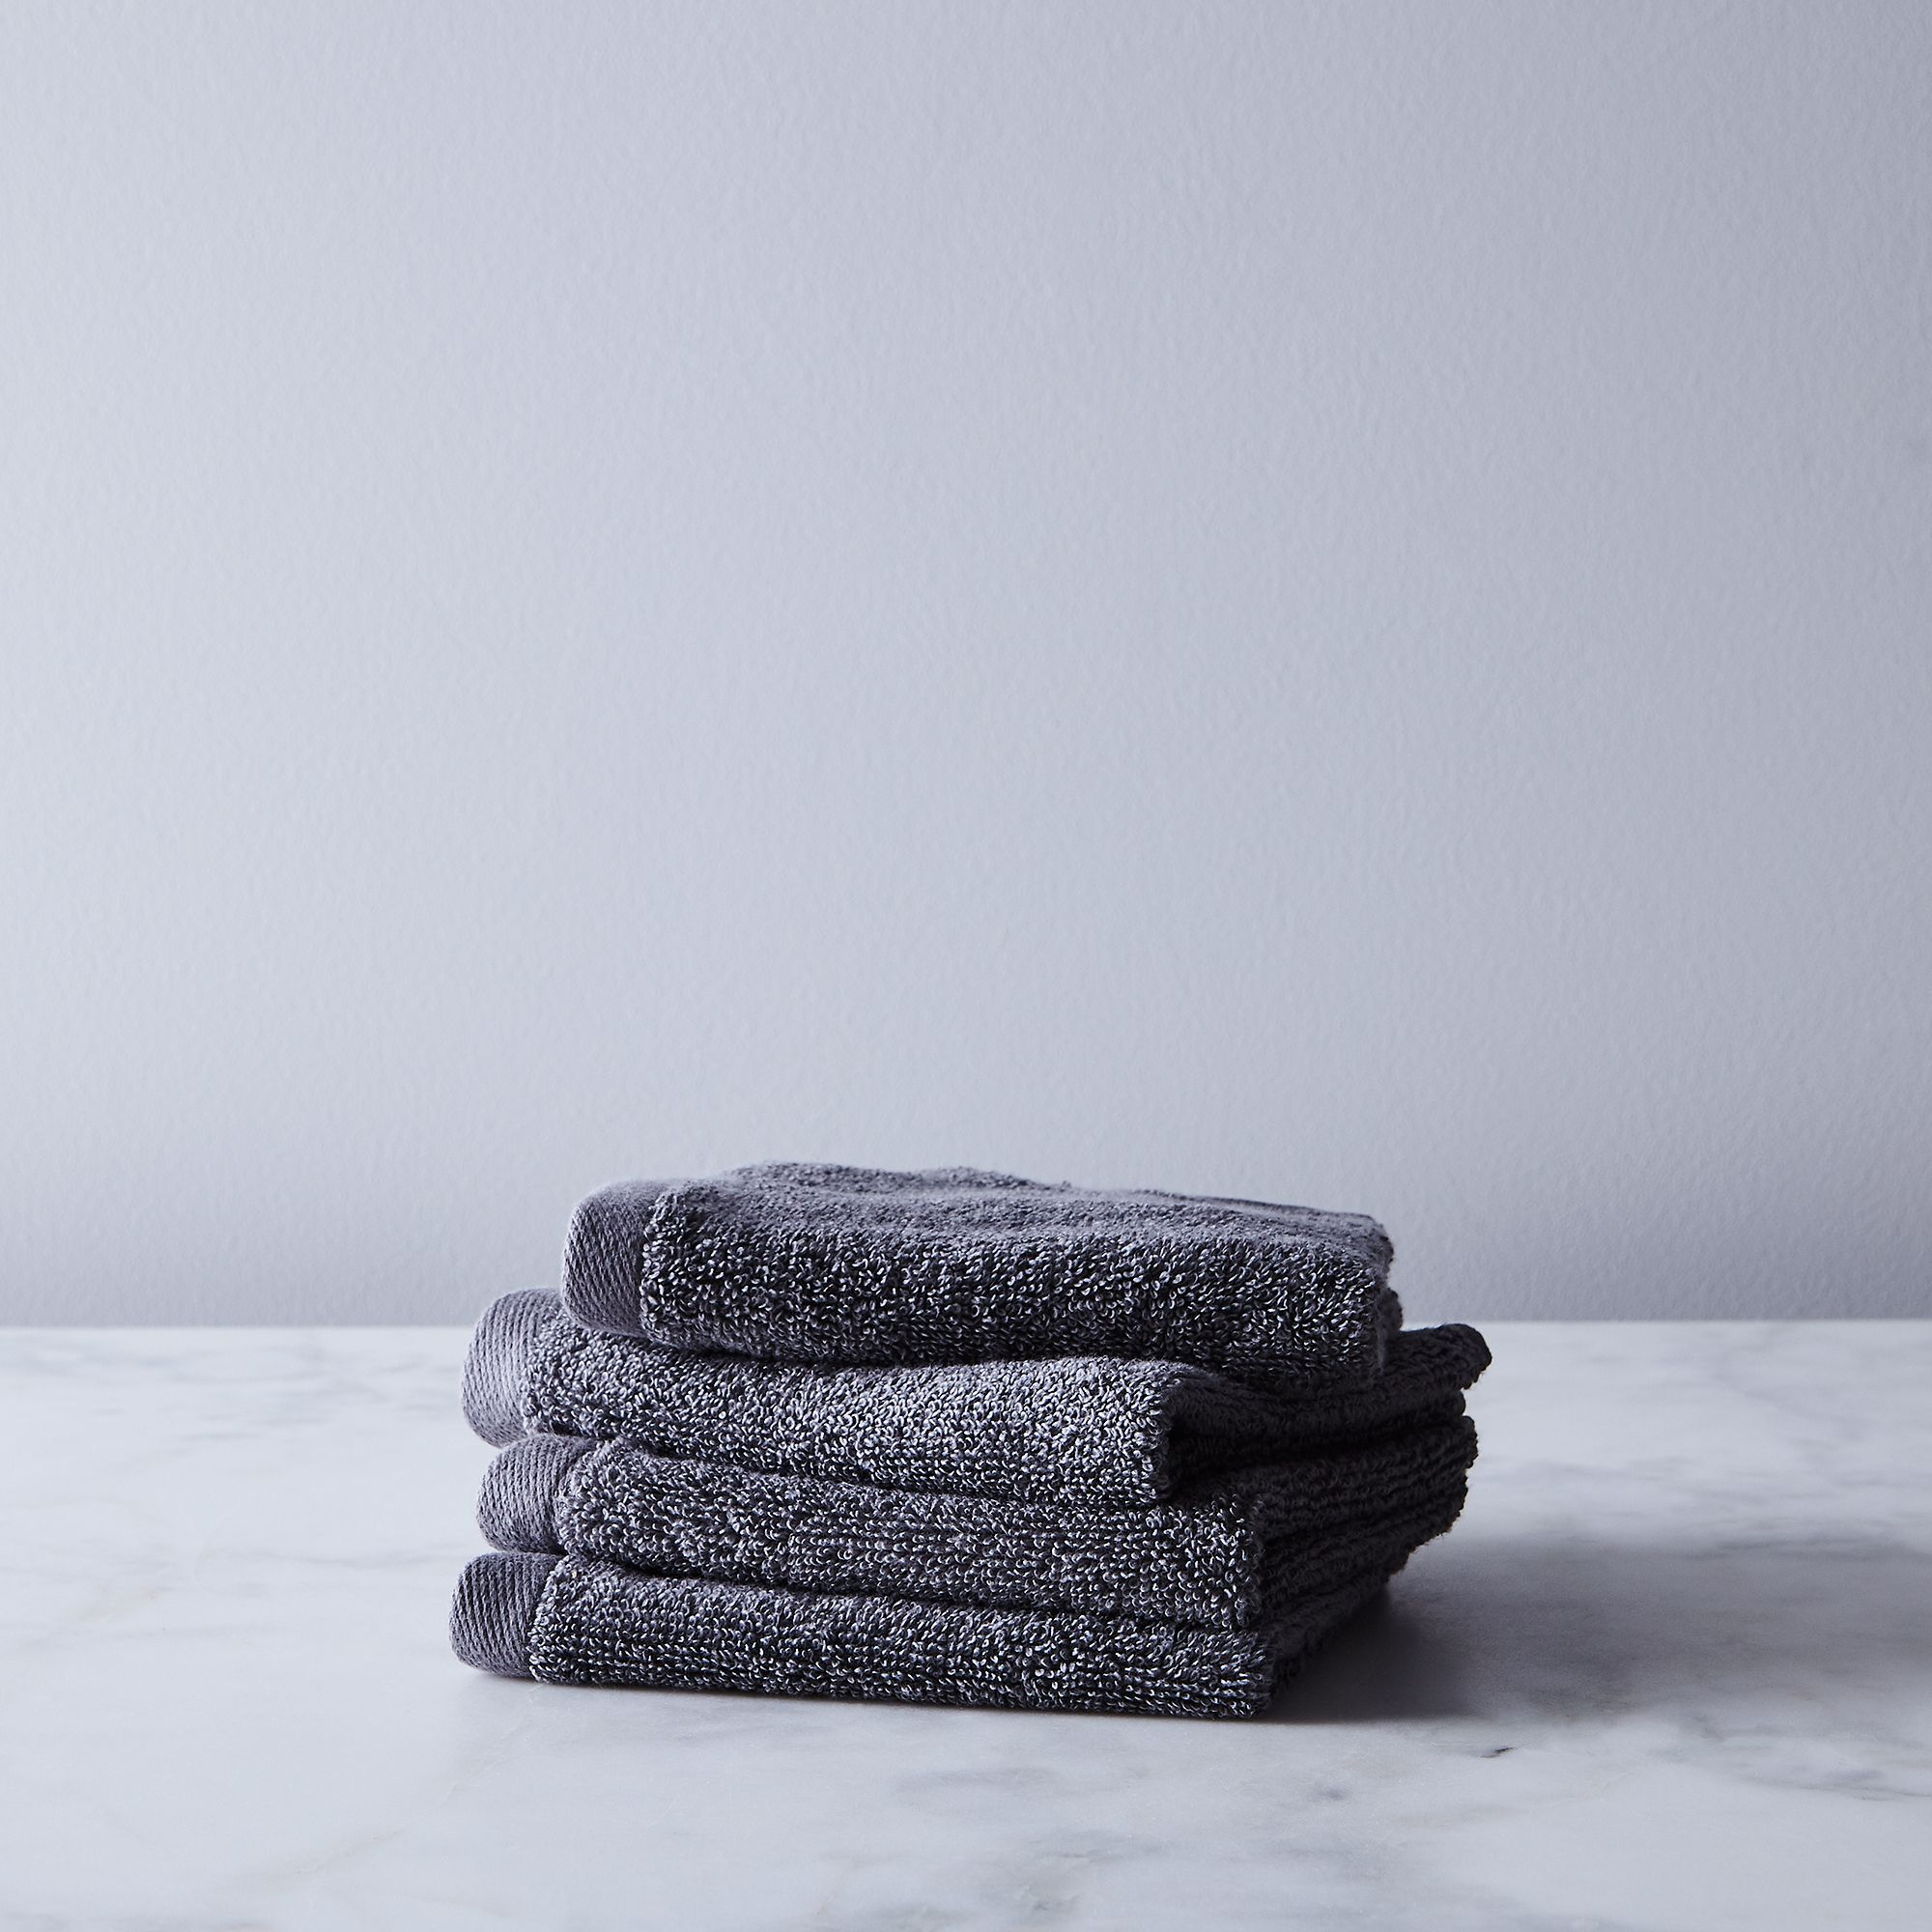 4f4da570 f8ab 48e0 b9ae 166c107e1f30  2017 0926 snowe home soft cotton towels washcloth set of 4 charcoal grey silo rocky luten 006